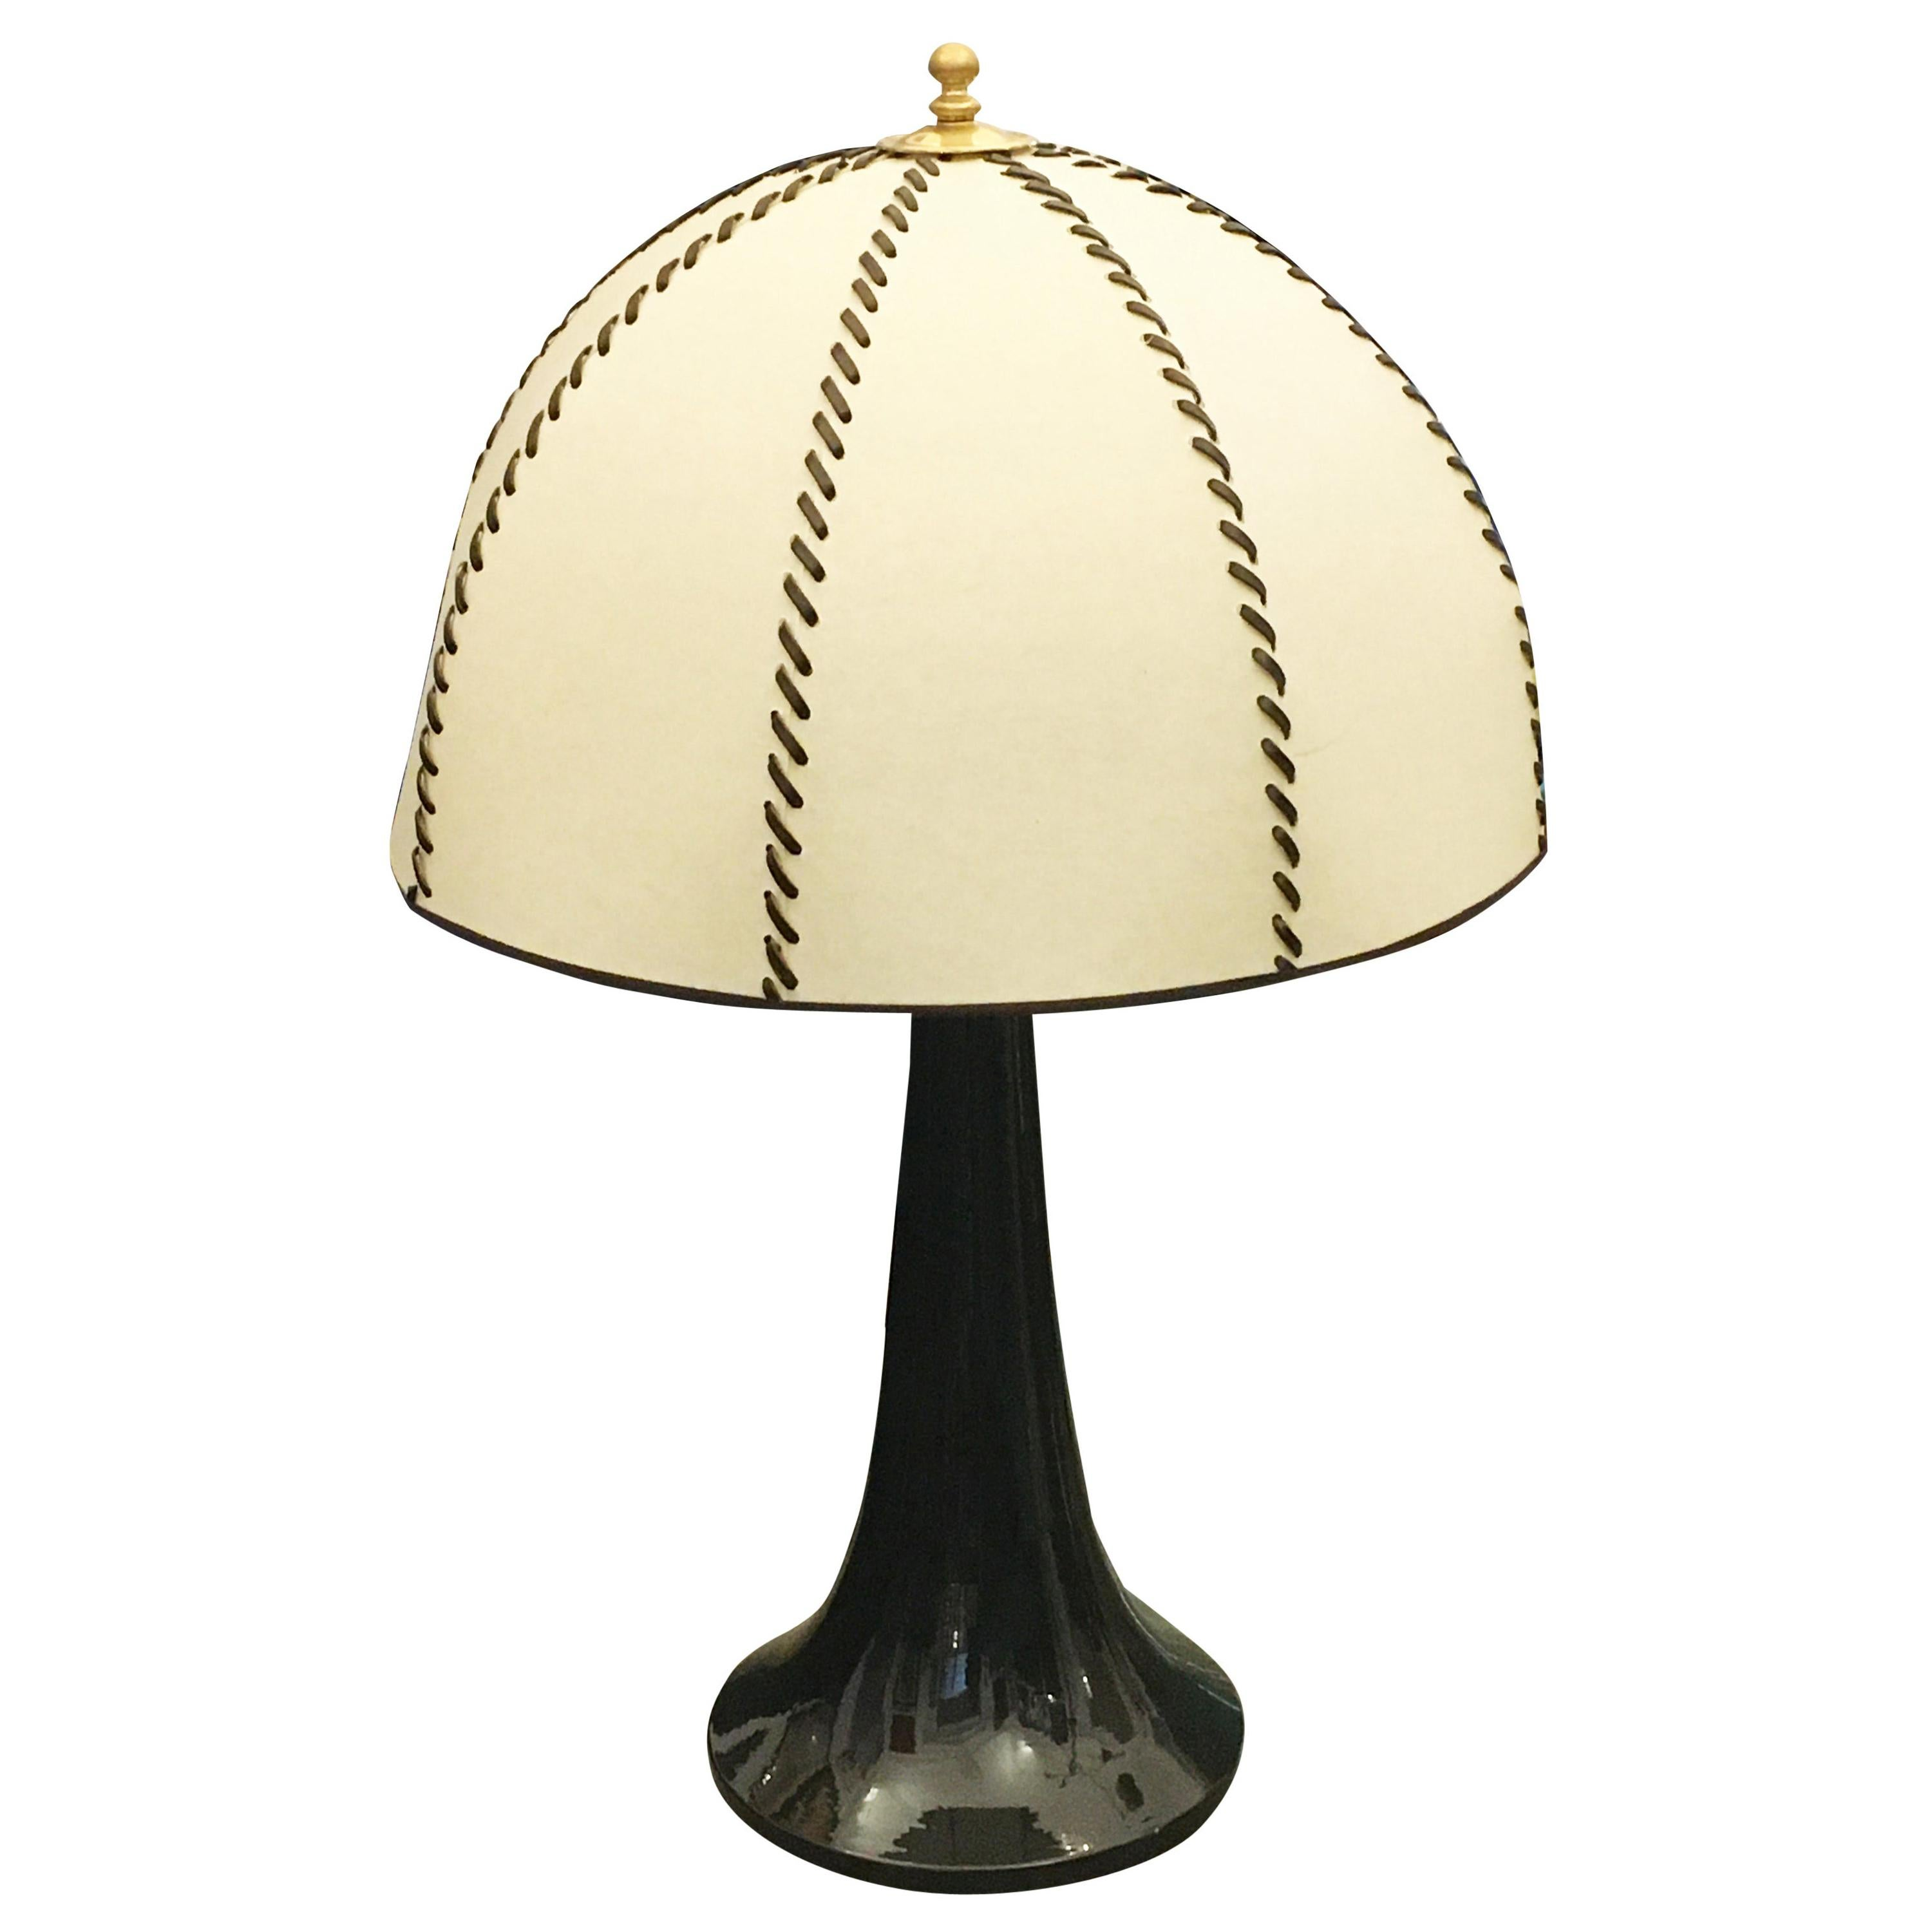 Ceramic Table Lamp and Parchment Lampshade from 1970